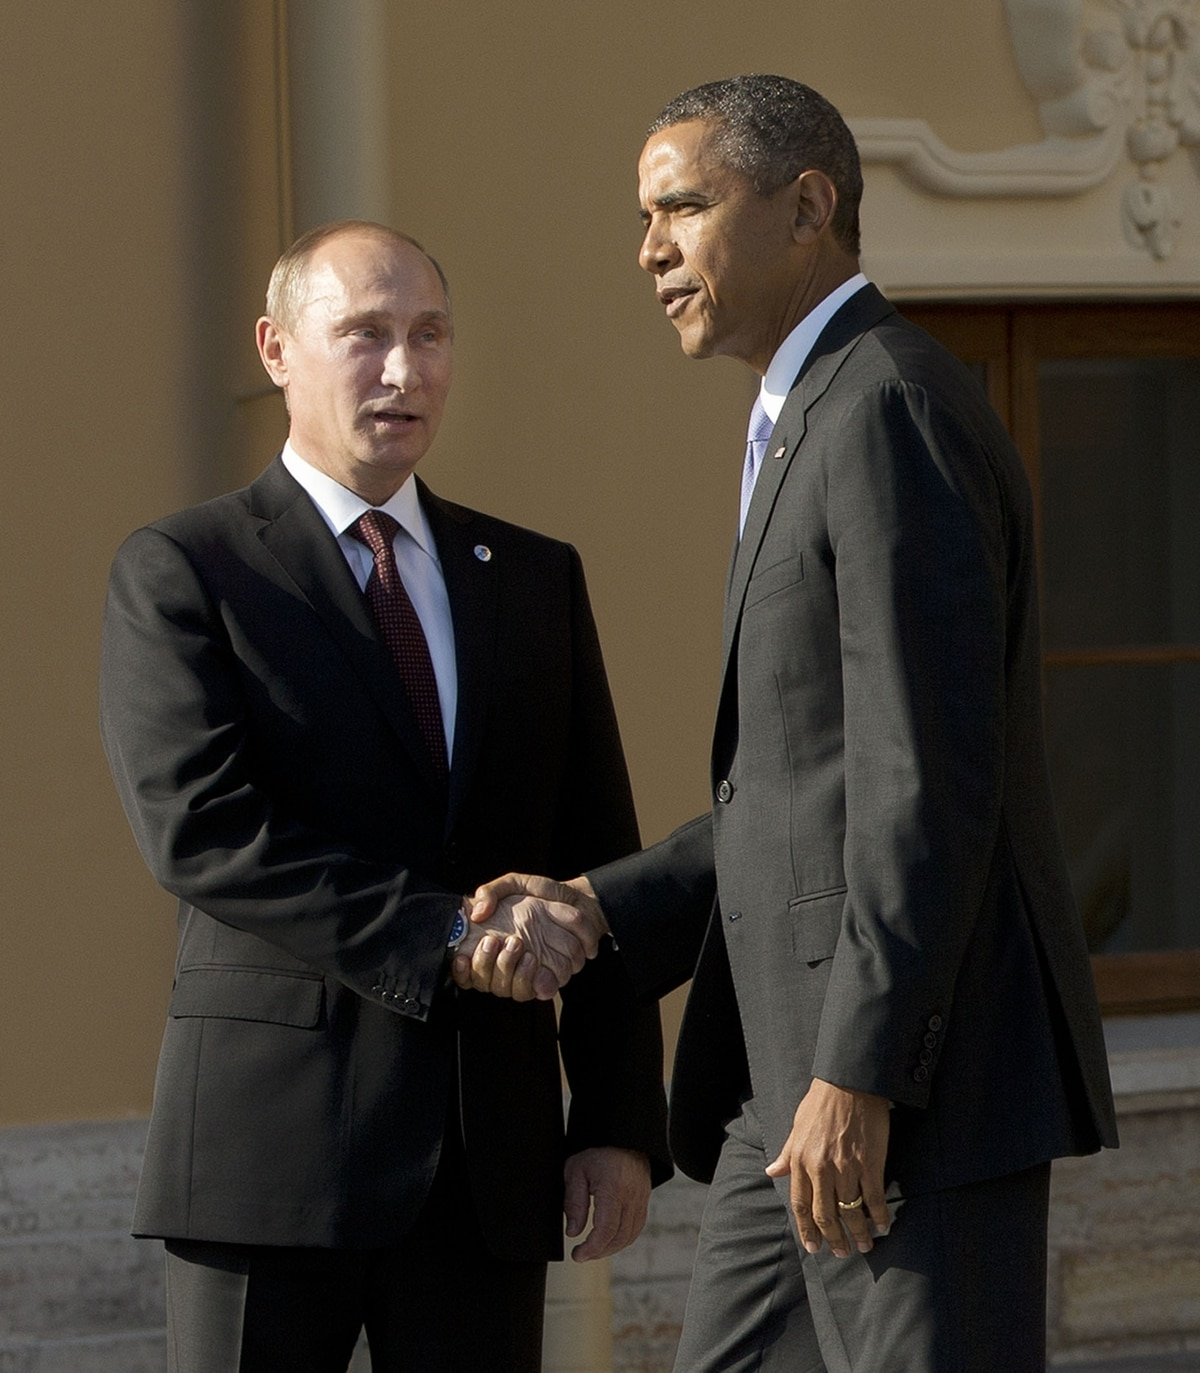 Resume Templates Google Us Russia Resume Military Relations To Deconflict In Syria Resume Headline Examples Word with How To Write An Amazing Resume Pdf Russias President Vladimir Putin L Welcomes Us President Barack Obama At  The Start Of The G Summit On September   In Saint Petersburg Bartender Duties For Resume Pdf